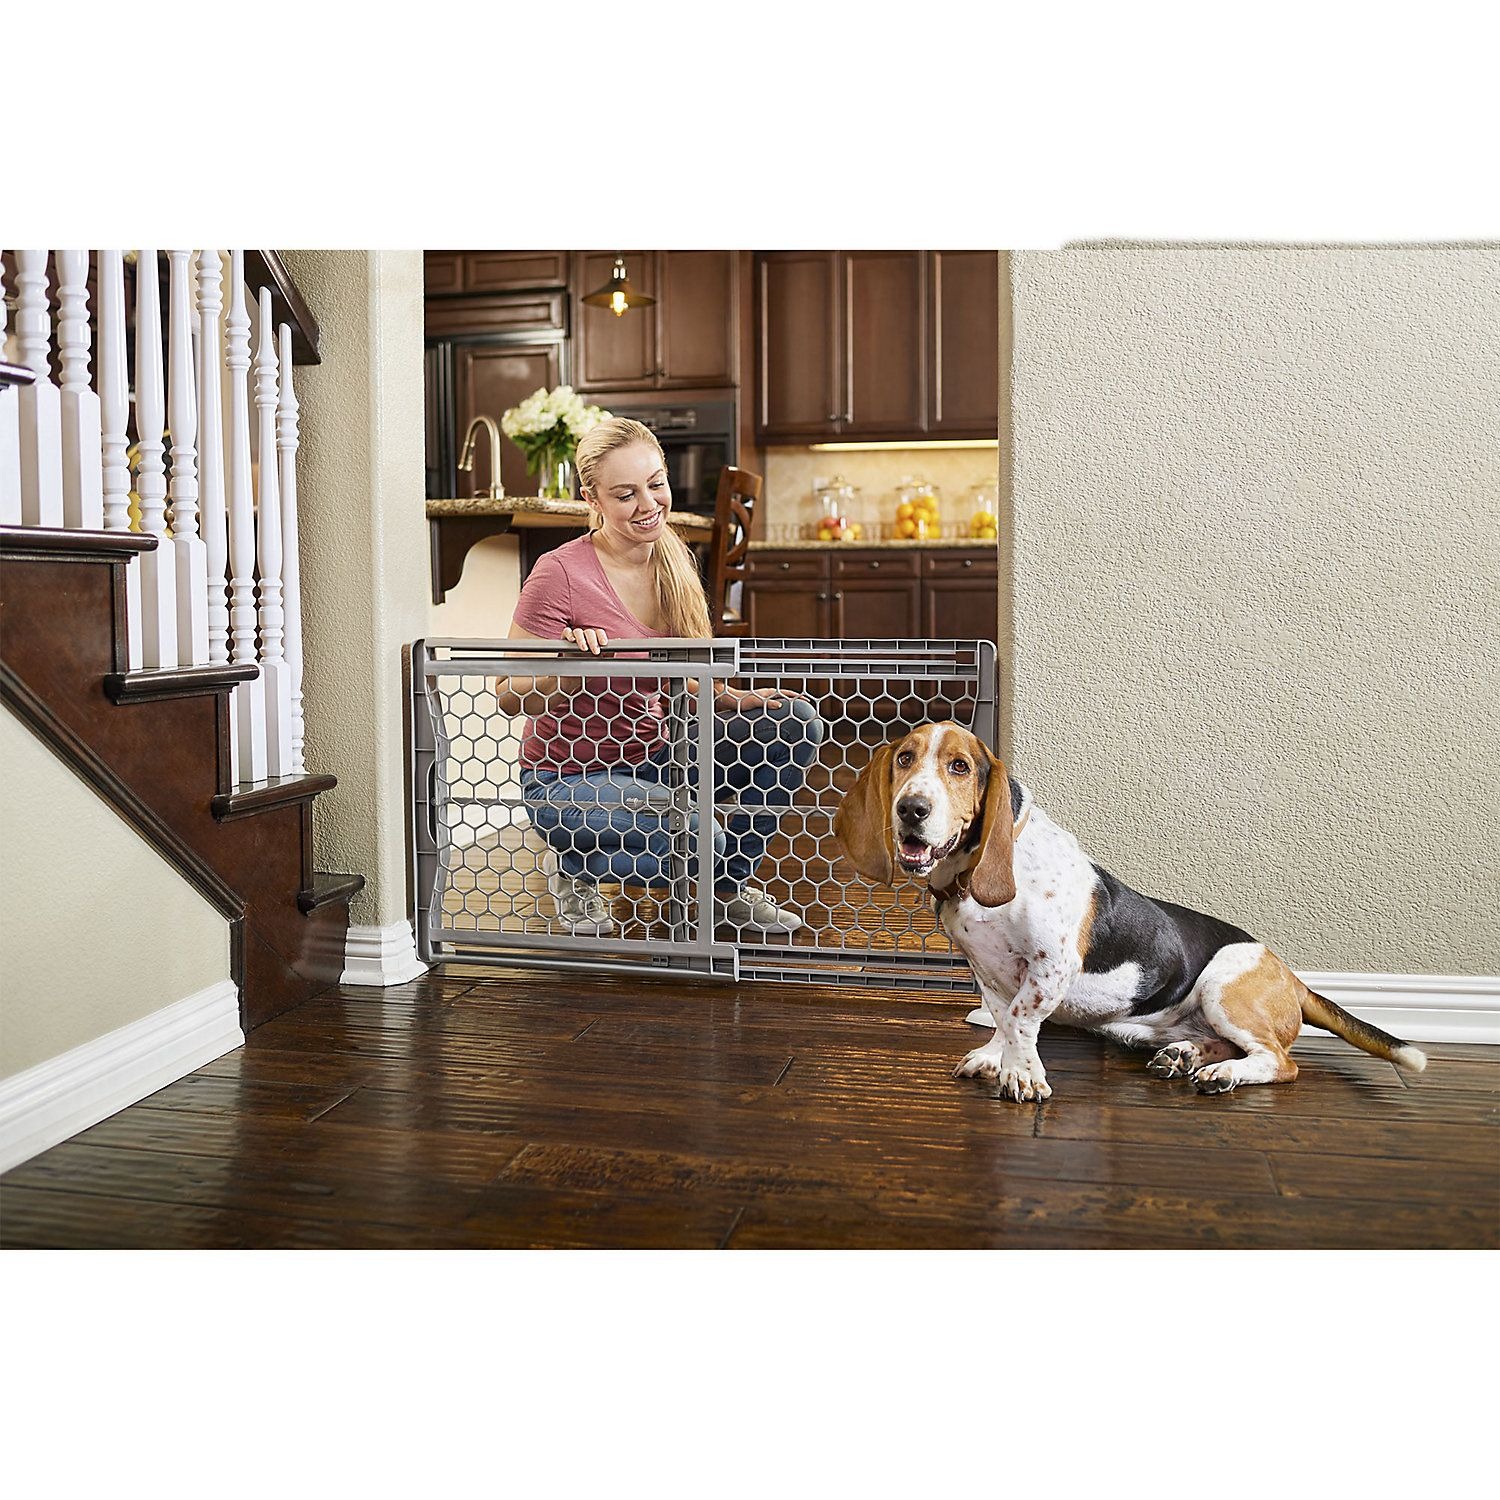 You Me Easy Fit Plastic Pet Gate 28 42 W X 23 H Pet Gate